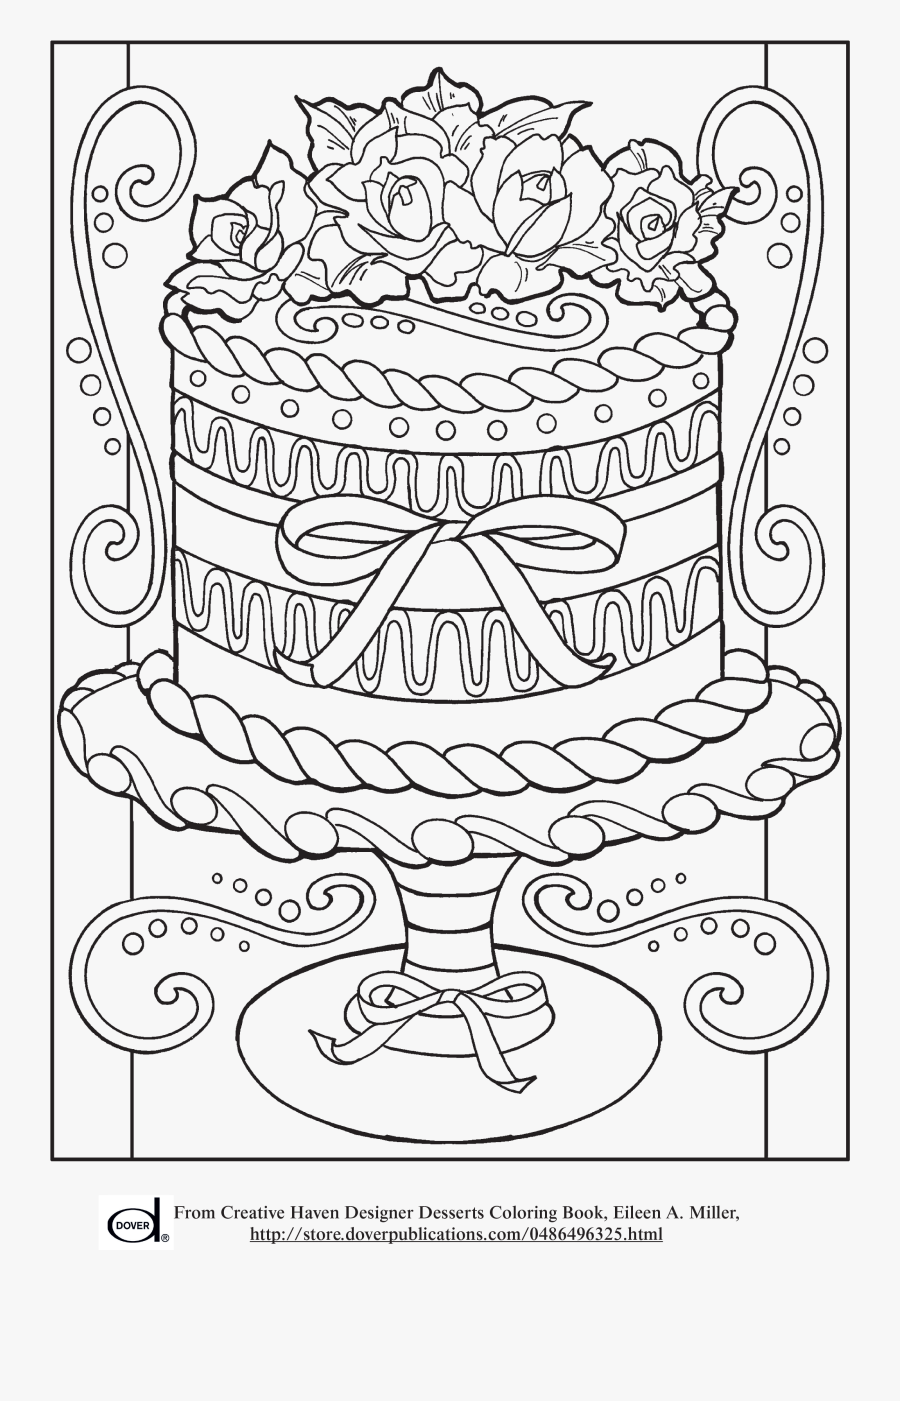 Free Printable Adult Coloring Pages - Cake Coloring Pages For Adults, Transparent Clipart